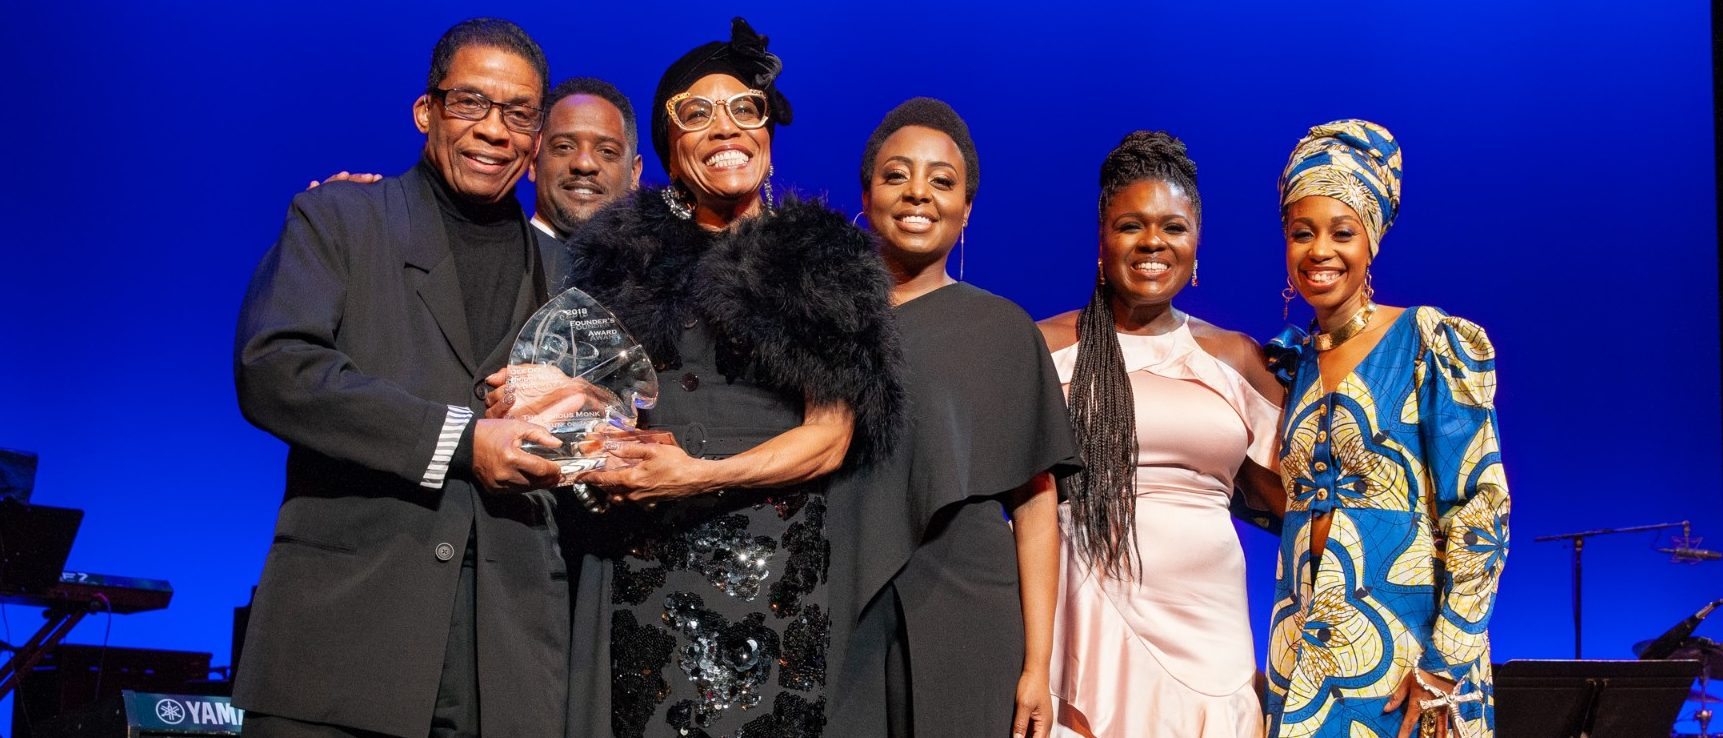 Institute Advisory Board member Dee Dee Bridgewater accepts the 2018 Maria Fisher Founder's Award with (from left) Herbie Hancock, Blair Underwood, Ledisi, Deborah Joy Winans and Jazzmeia Horn.